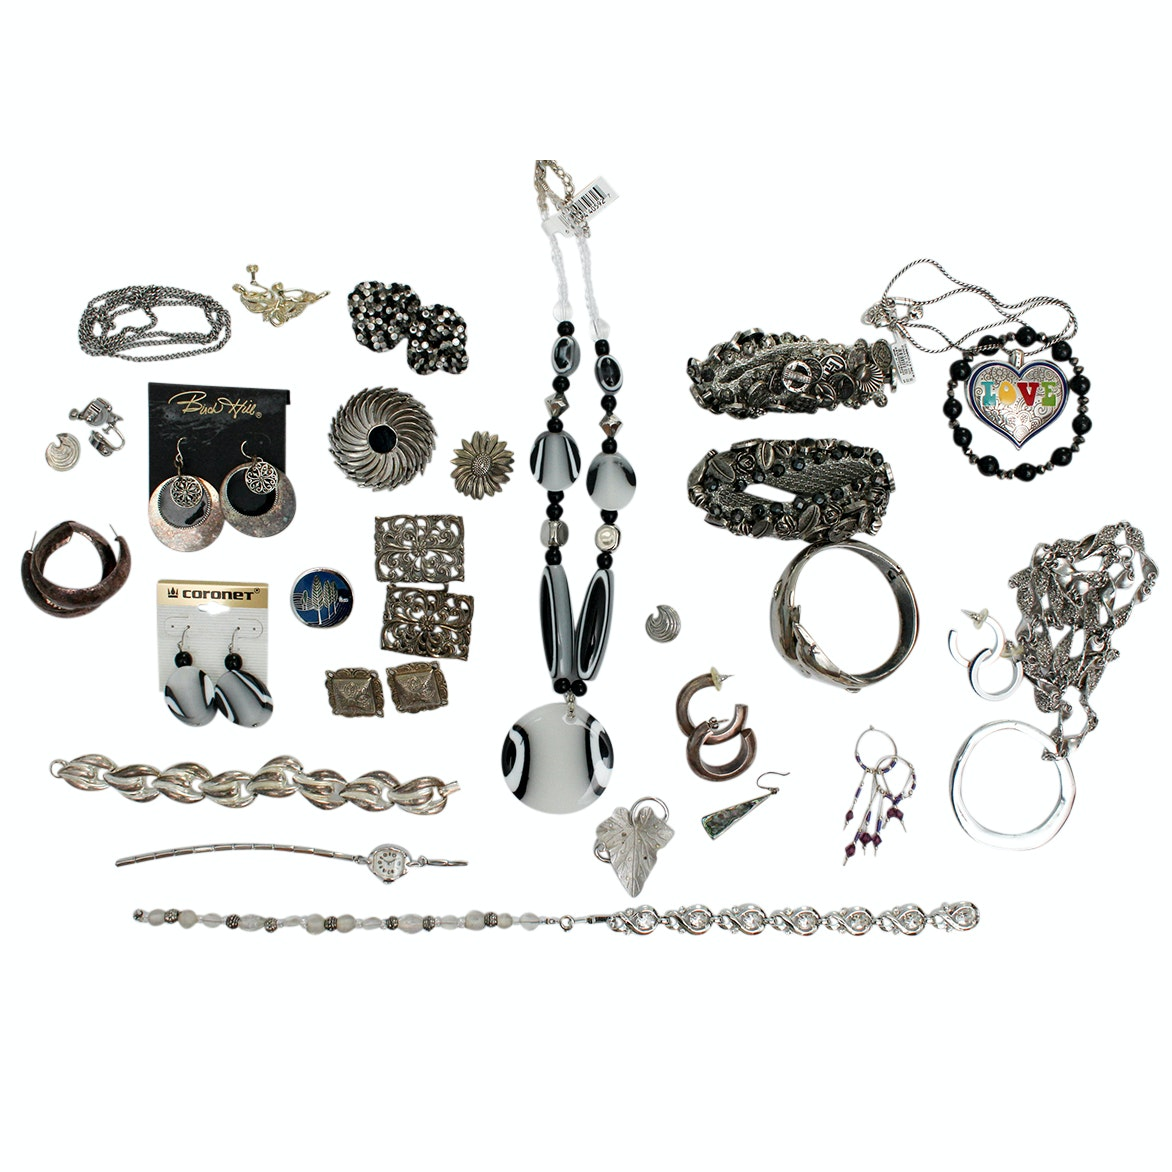 Assortment of Silver Tone Jewelry Including Brighton Heart Pendant Necklace